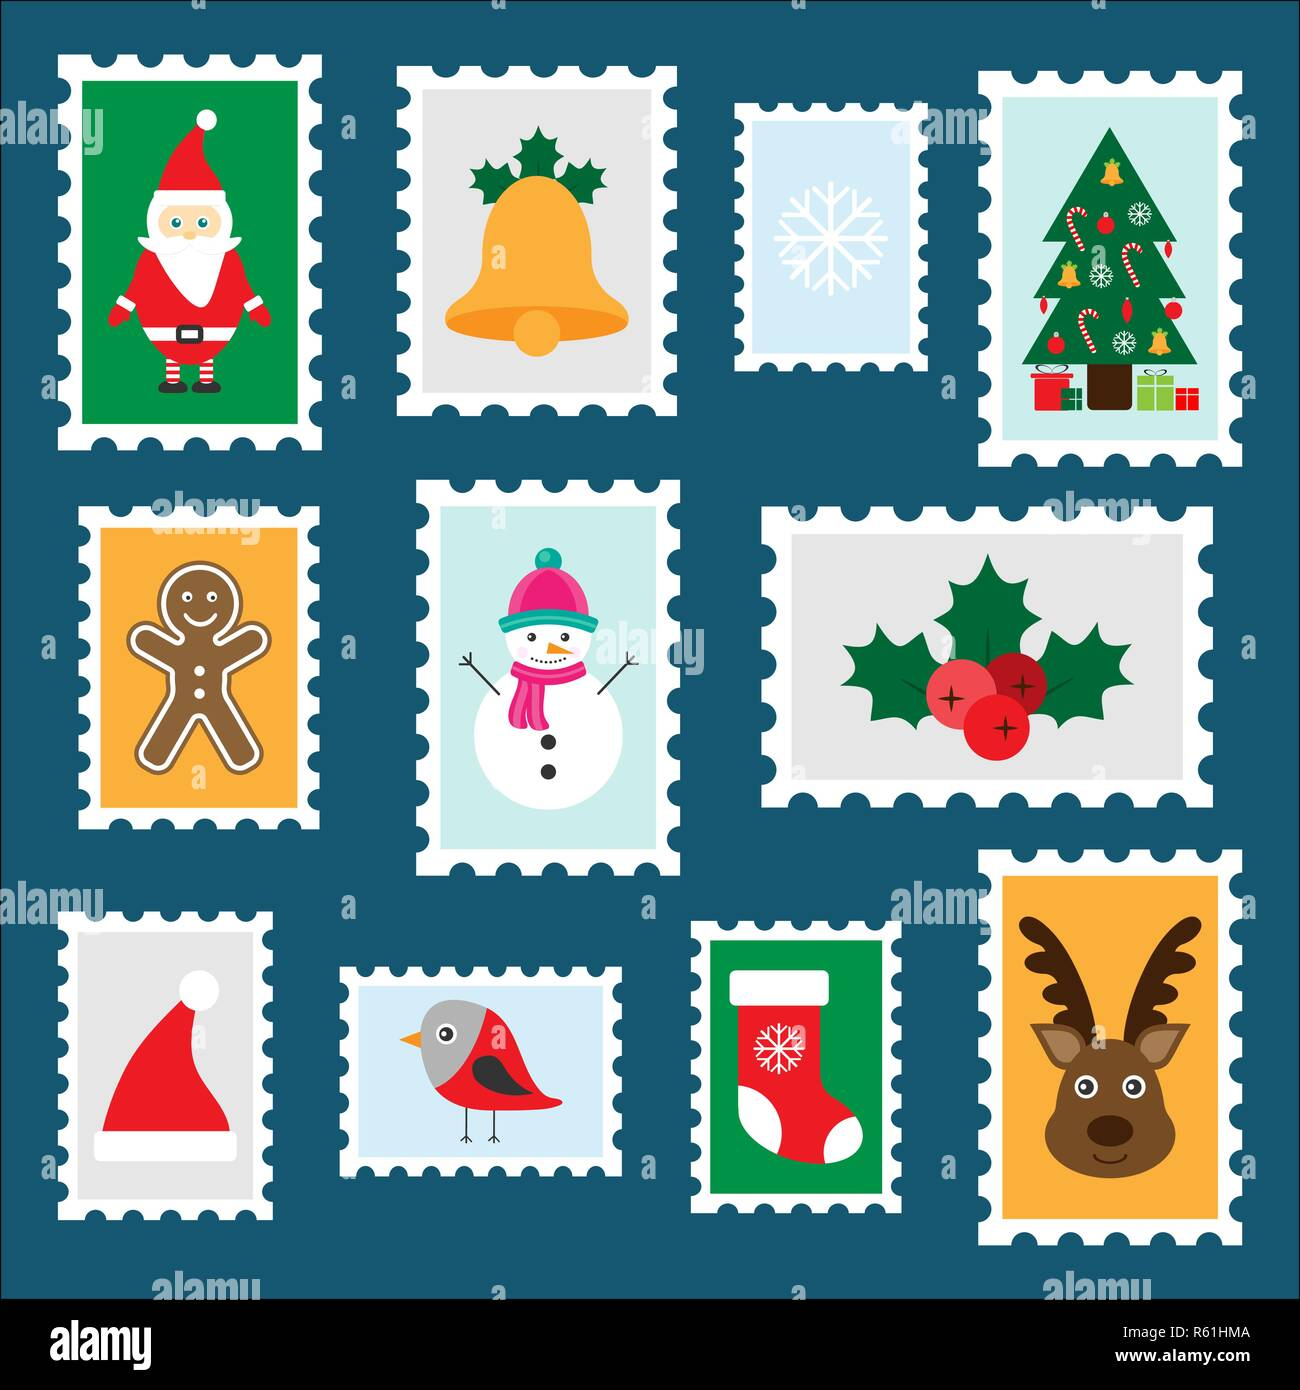 Different colorful christmas stamps for children, fun preschool activity for kids, letter to Santa Claus, set of stickers, vector Stock Vector